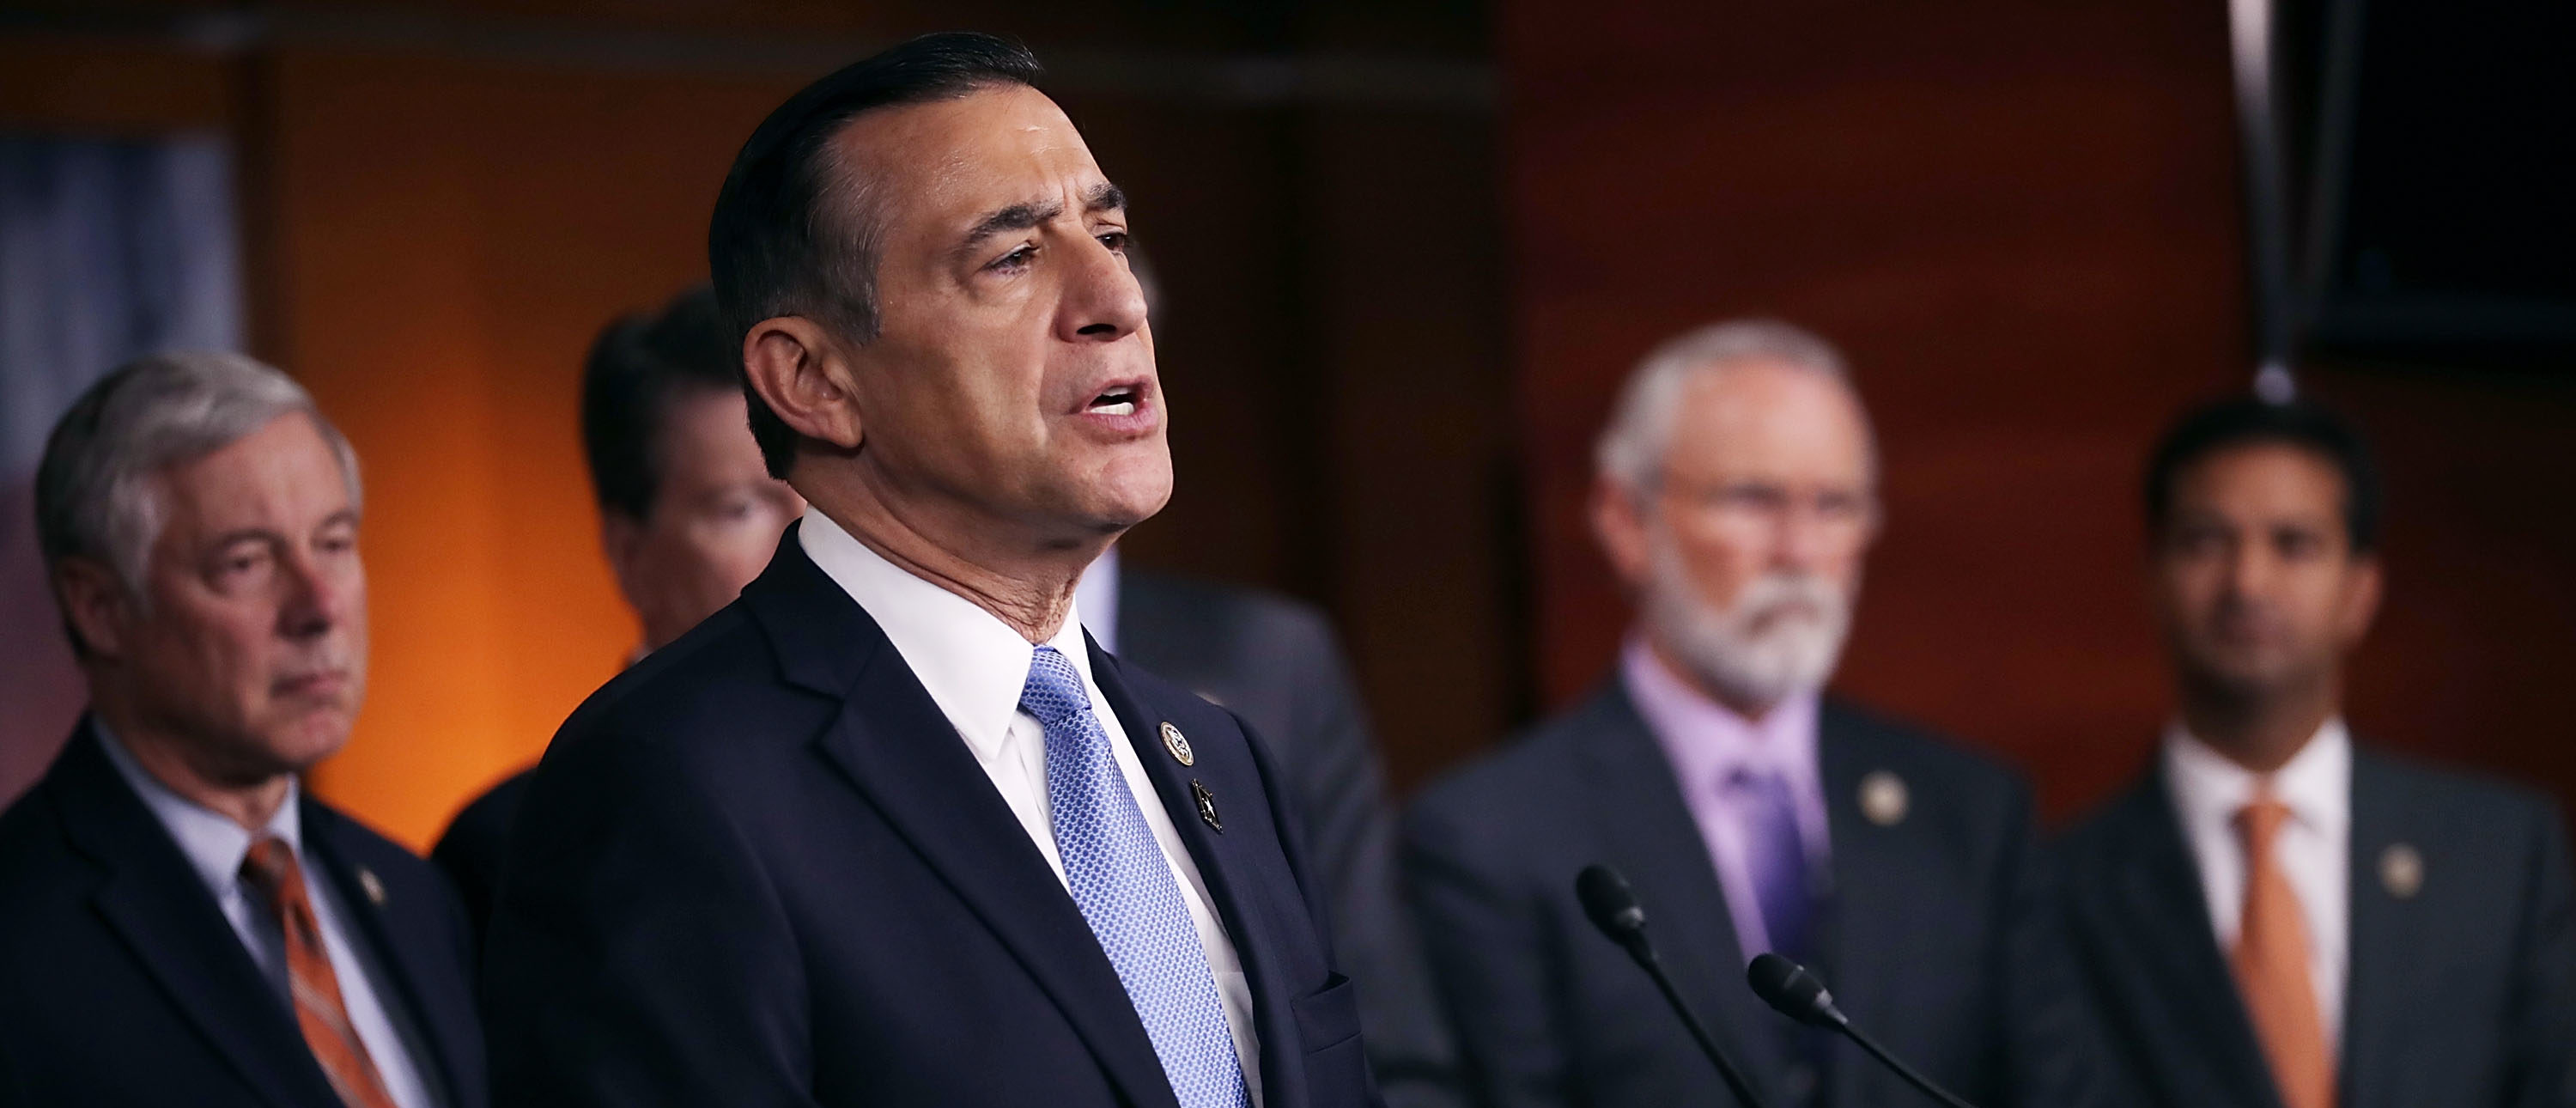 Issa Slams 'Turncoat Lawyer' Cohen, Says Even If Trump Lied About Trump Tower Meeting 'Nobody's Going To Be Surprised'